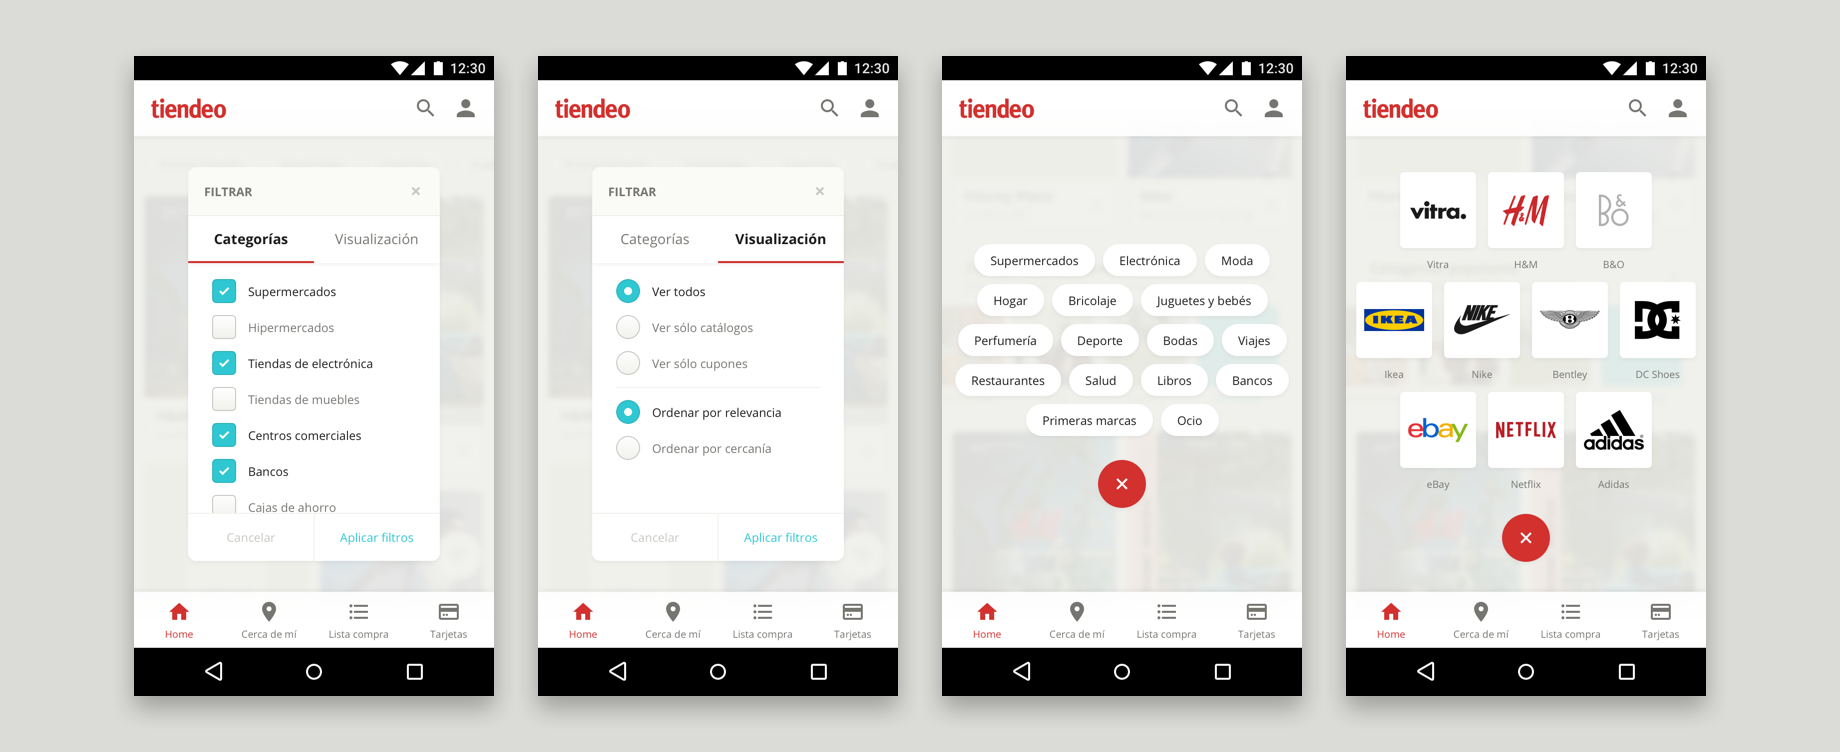 Tiendeo filters and discover mobile and tablet